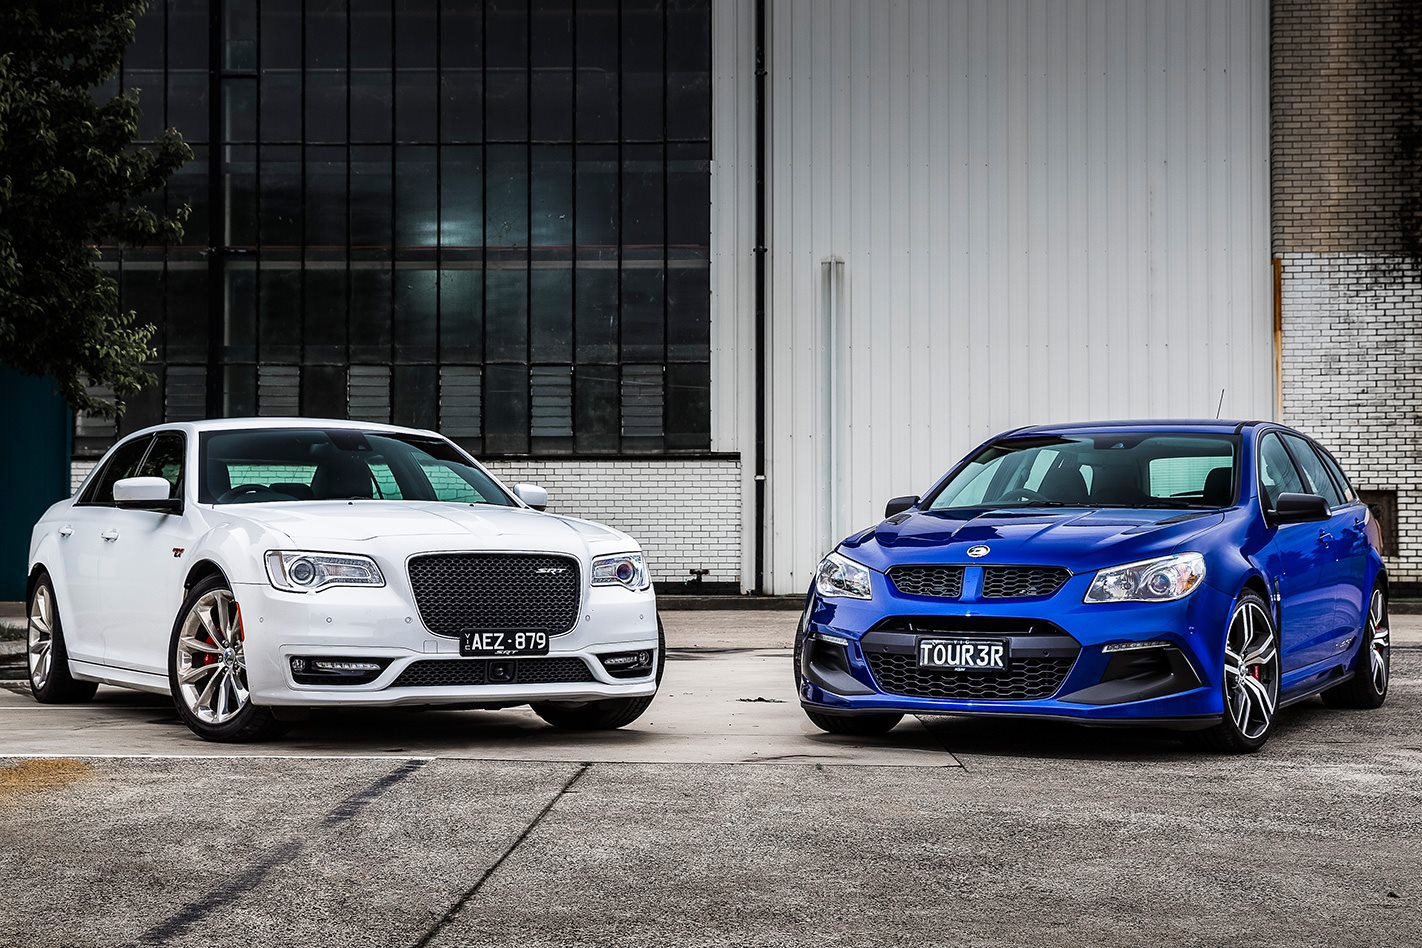 2018 chrysler 300 srt. fine 2018 chrysler 300 srt vs hsv clubsport r8 lsa tourer to 2018 chrysler srt